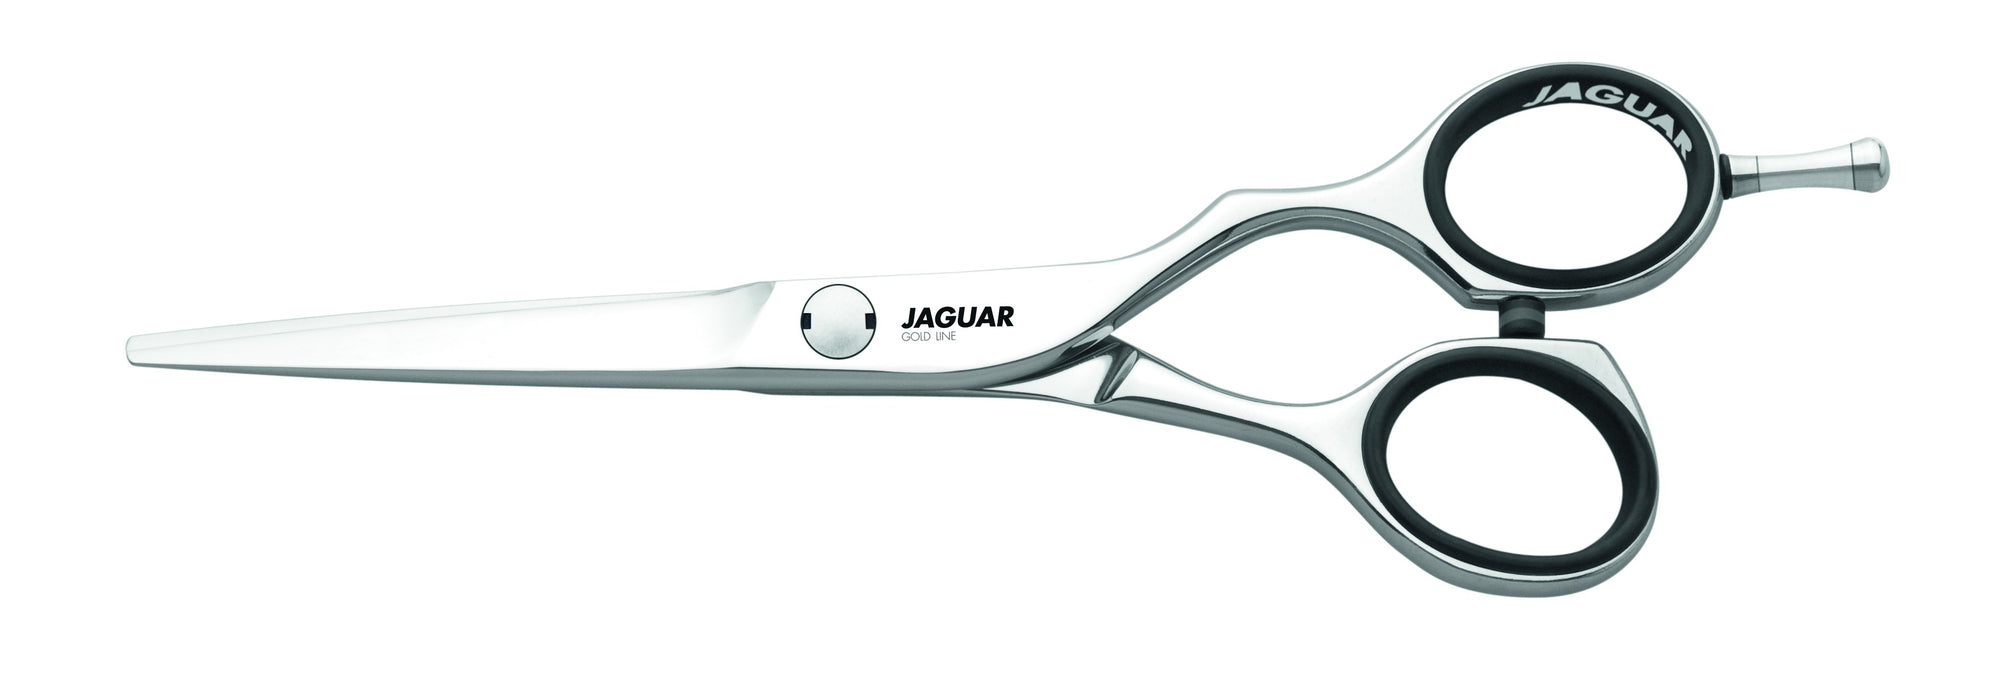 Jaguar Diamond E 5 inch